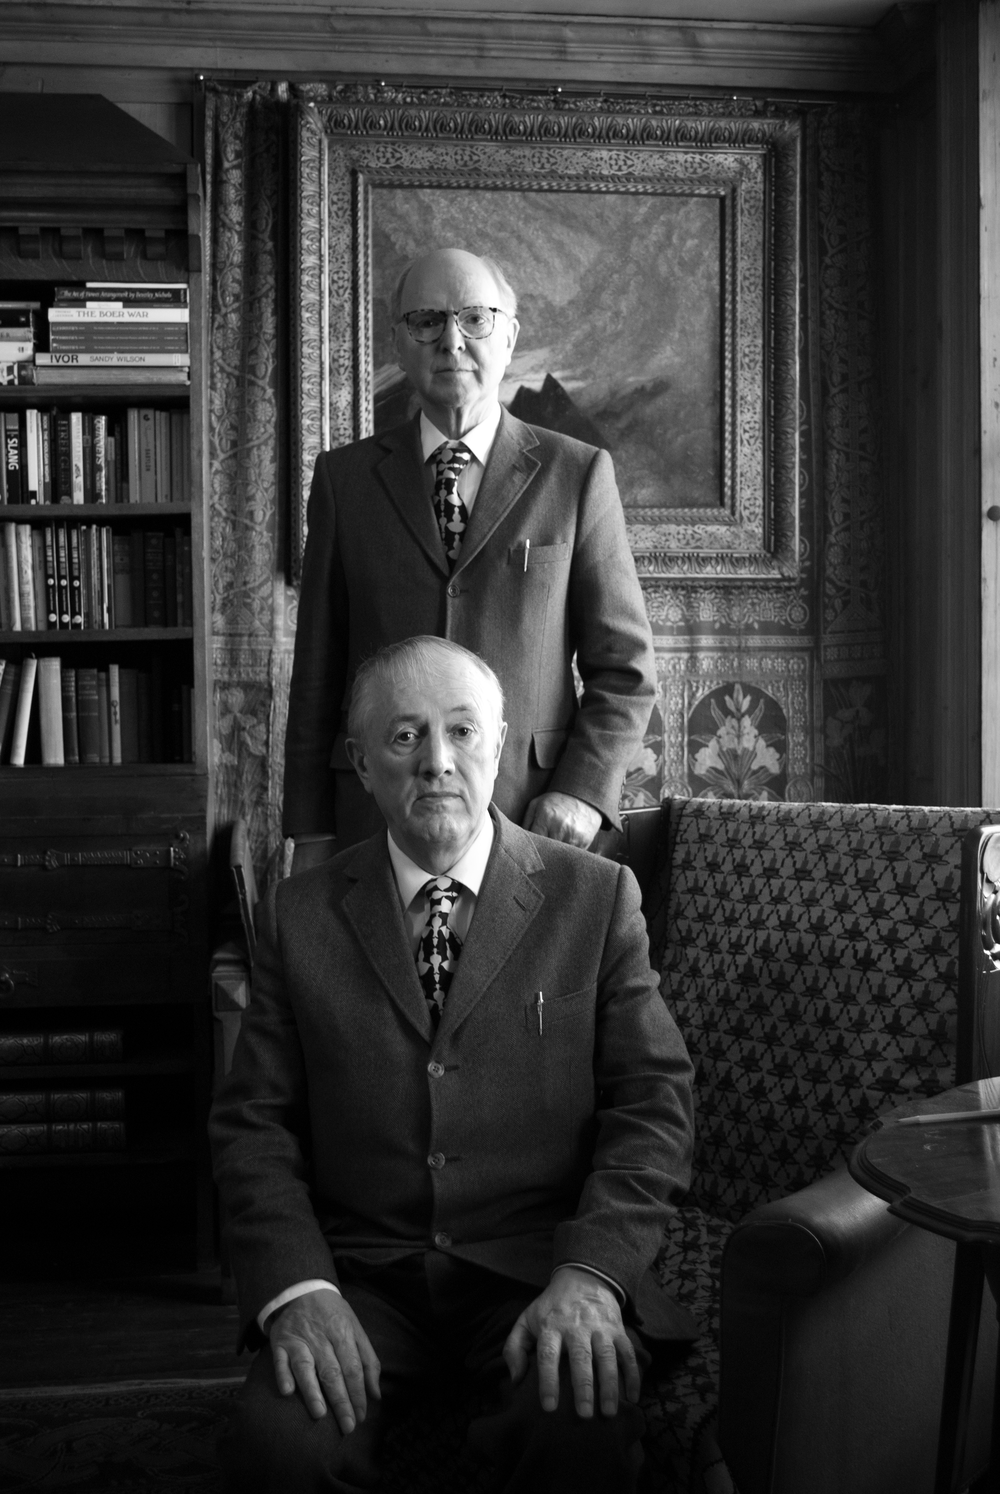 Gilbert and George, 2011